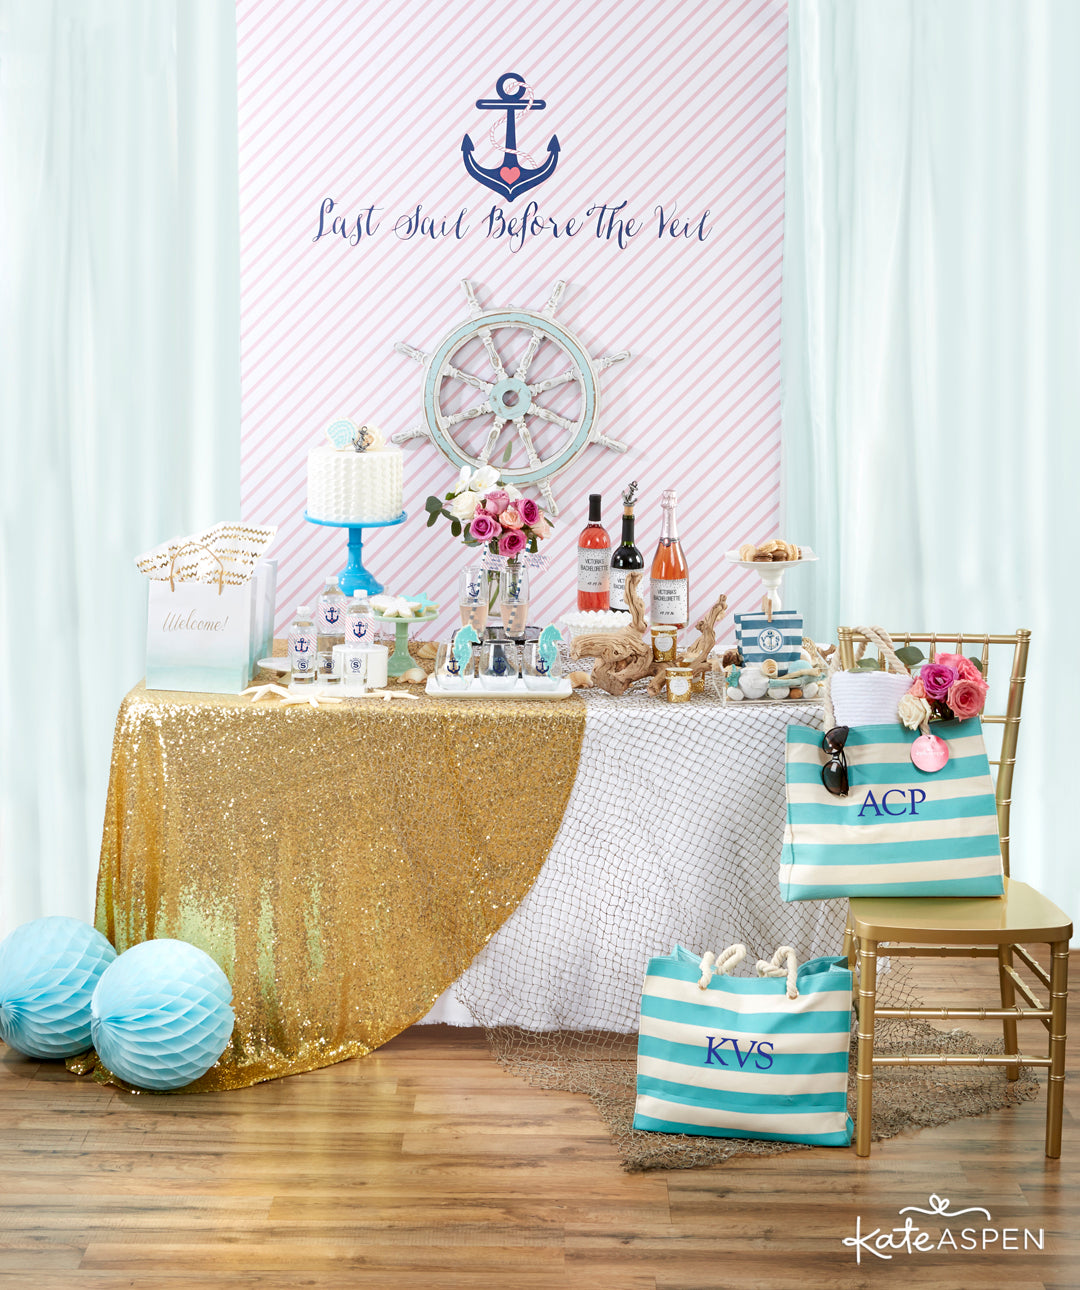 Tablescape | Last Sail Before the Veil | Bachelorette Party